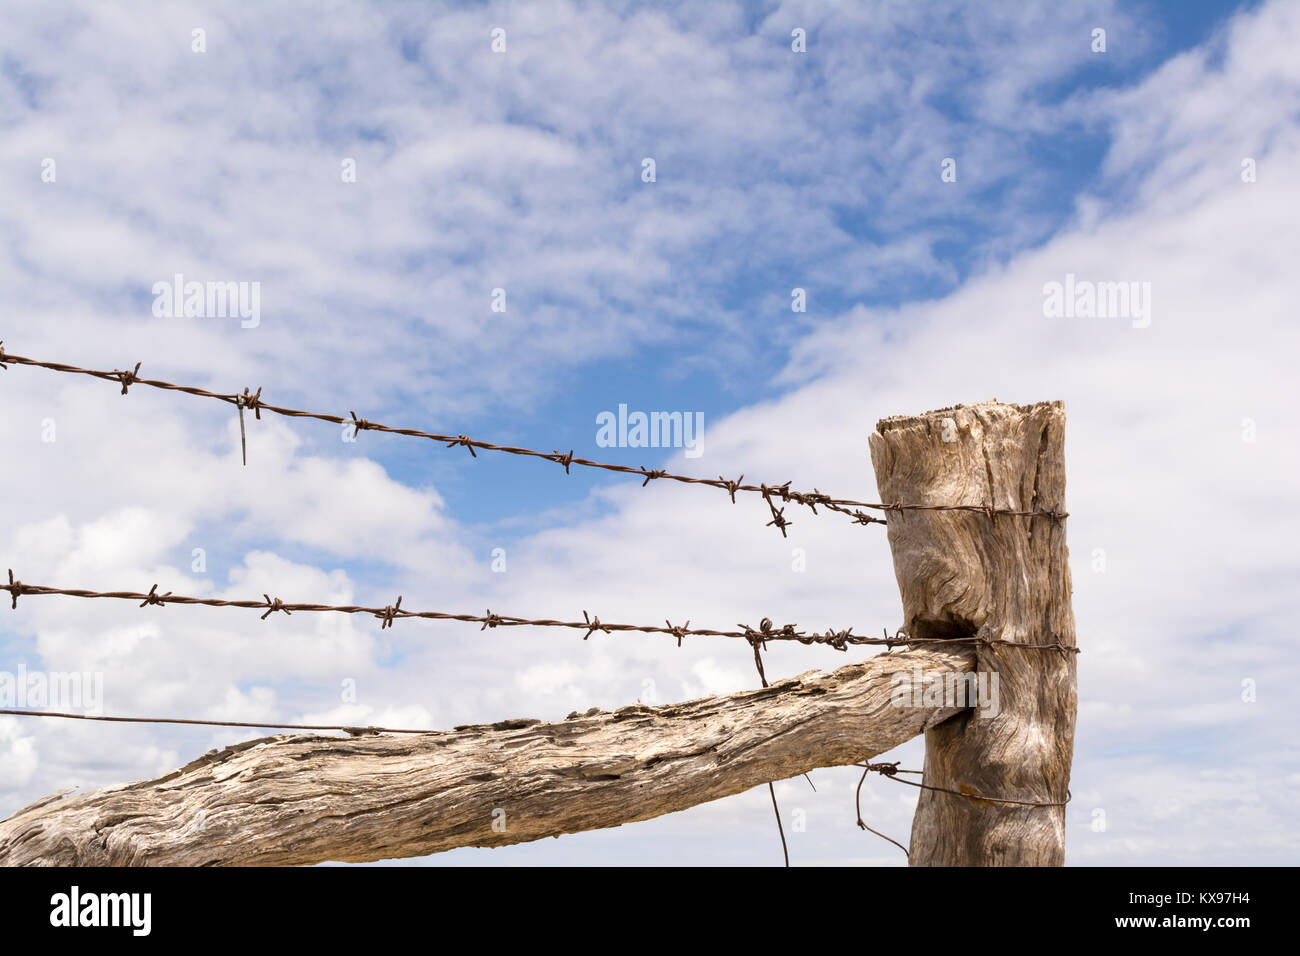 Old rural barbed wire fence with wooden posts with a clouded sky as it's background, found on the Fleurieu Peninsula - Stock Image